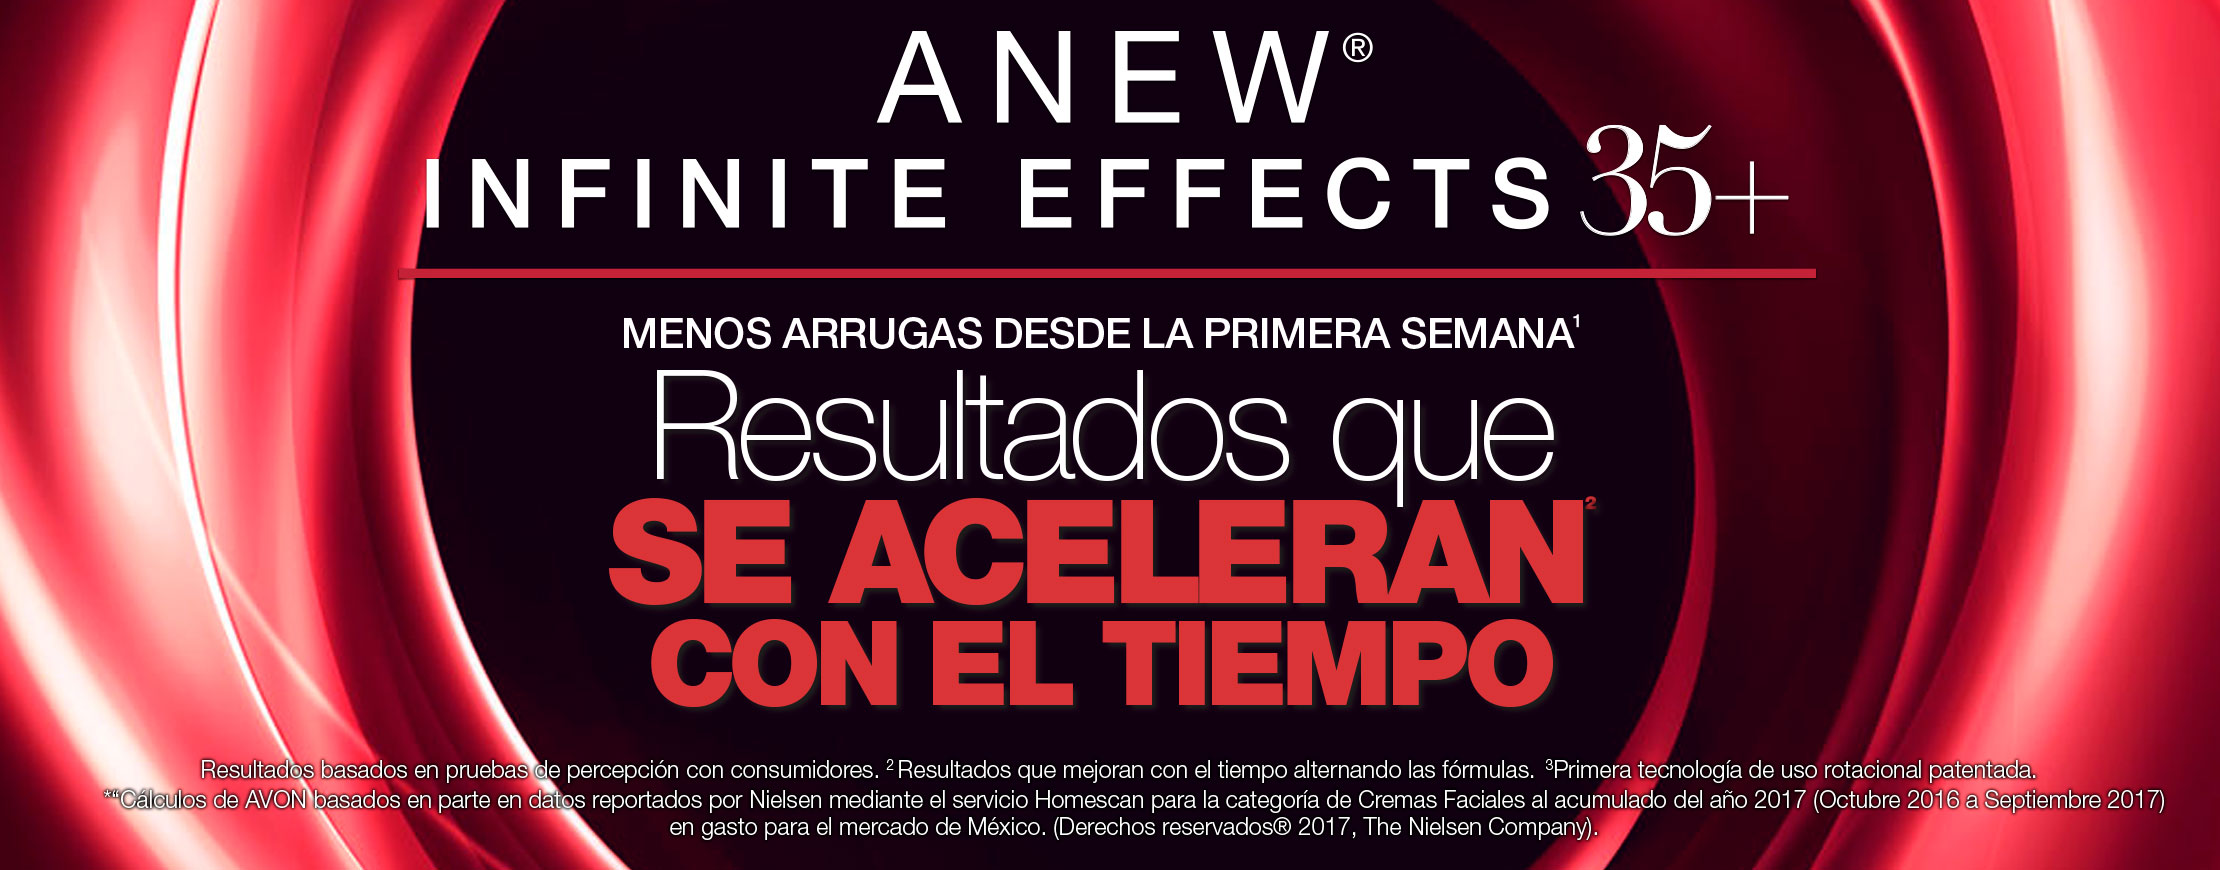 Anew Reversalist Infinite Effects